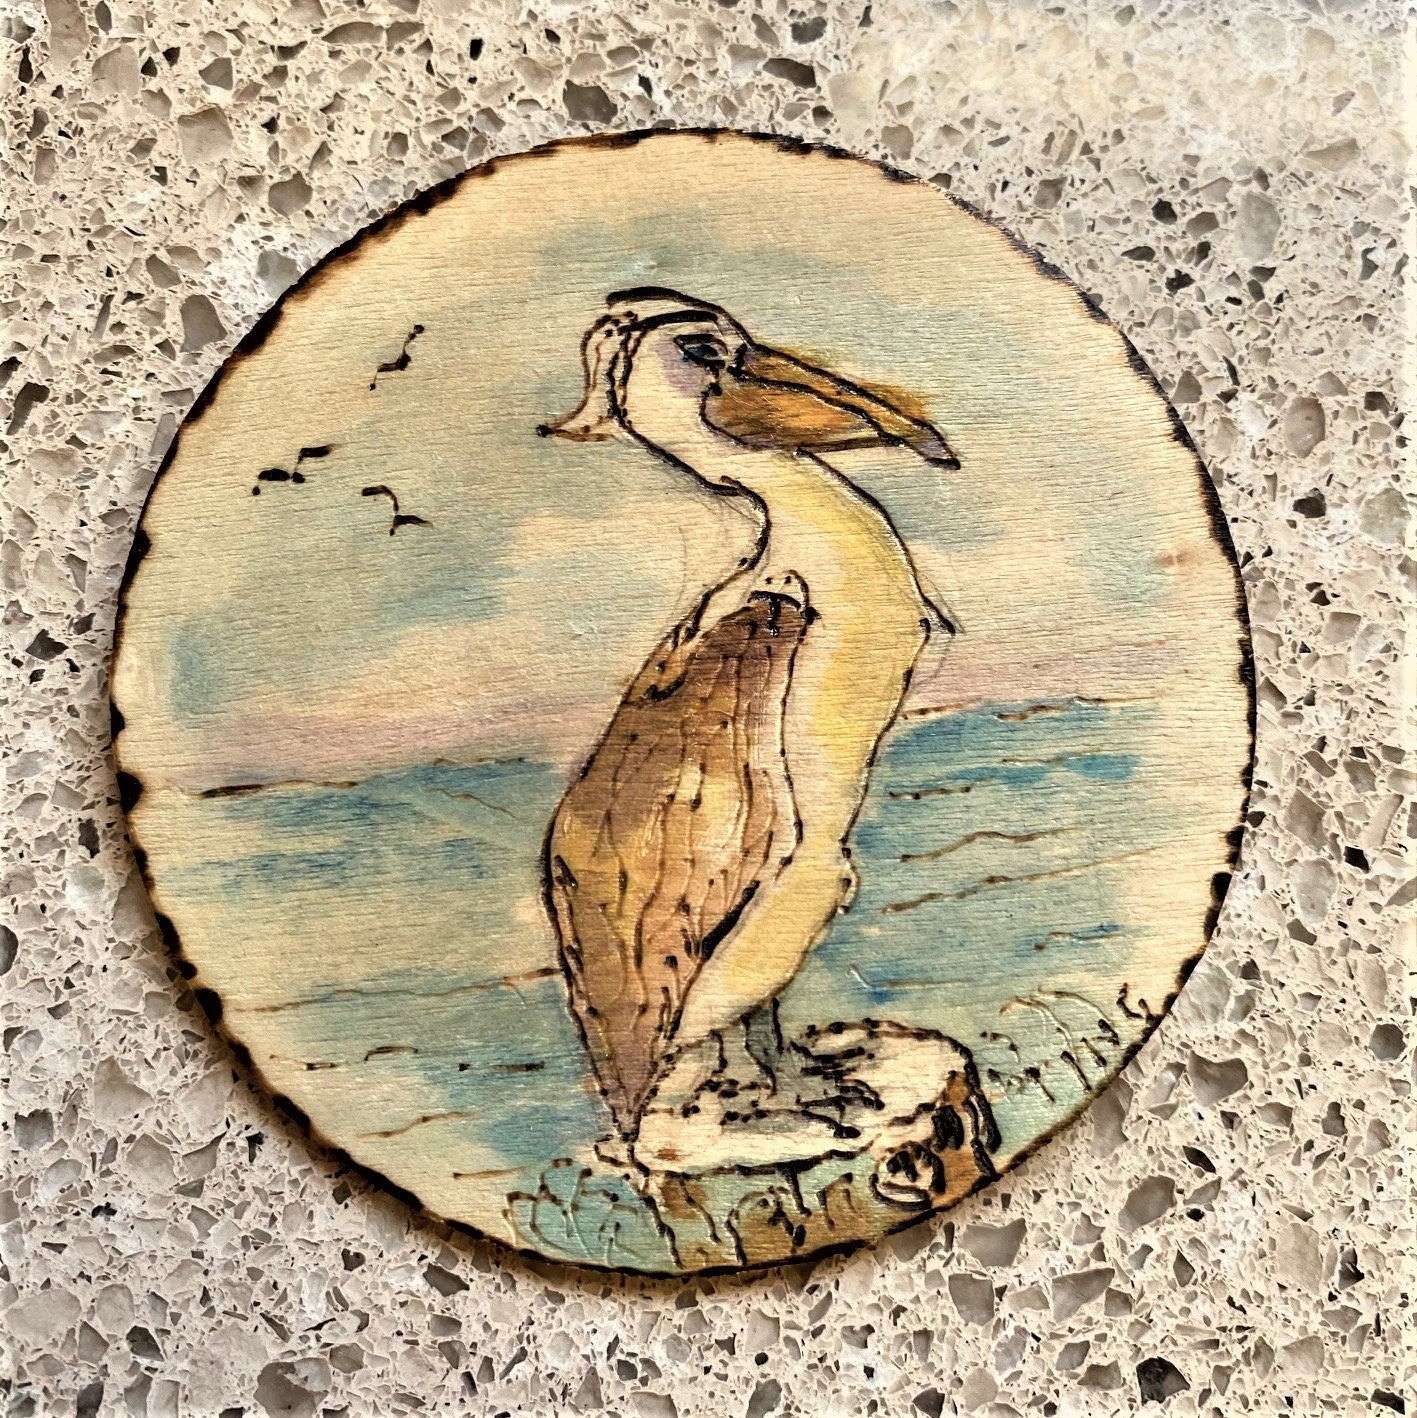 "'Irritable Pelican"" 3.25-Inch Circle Pin by Ting Blessington"